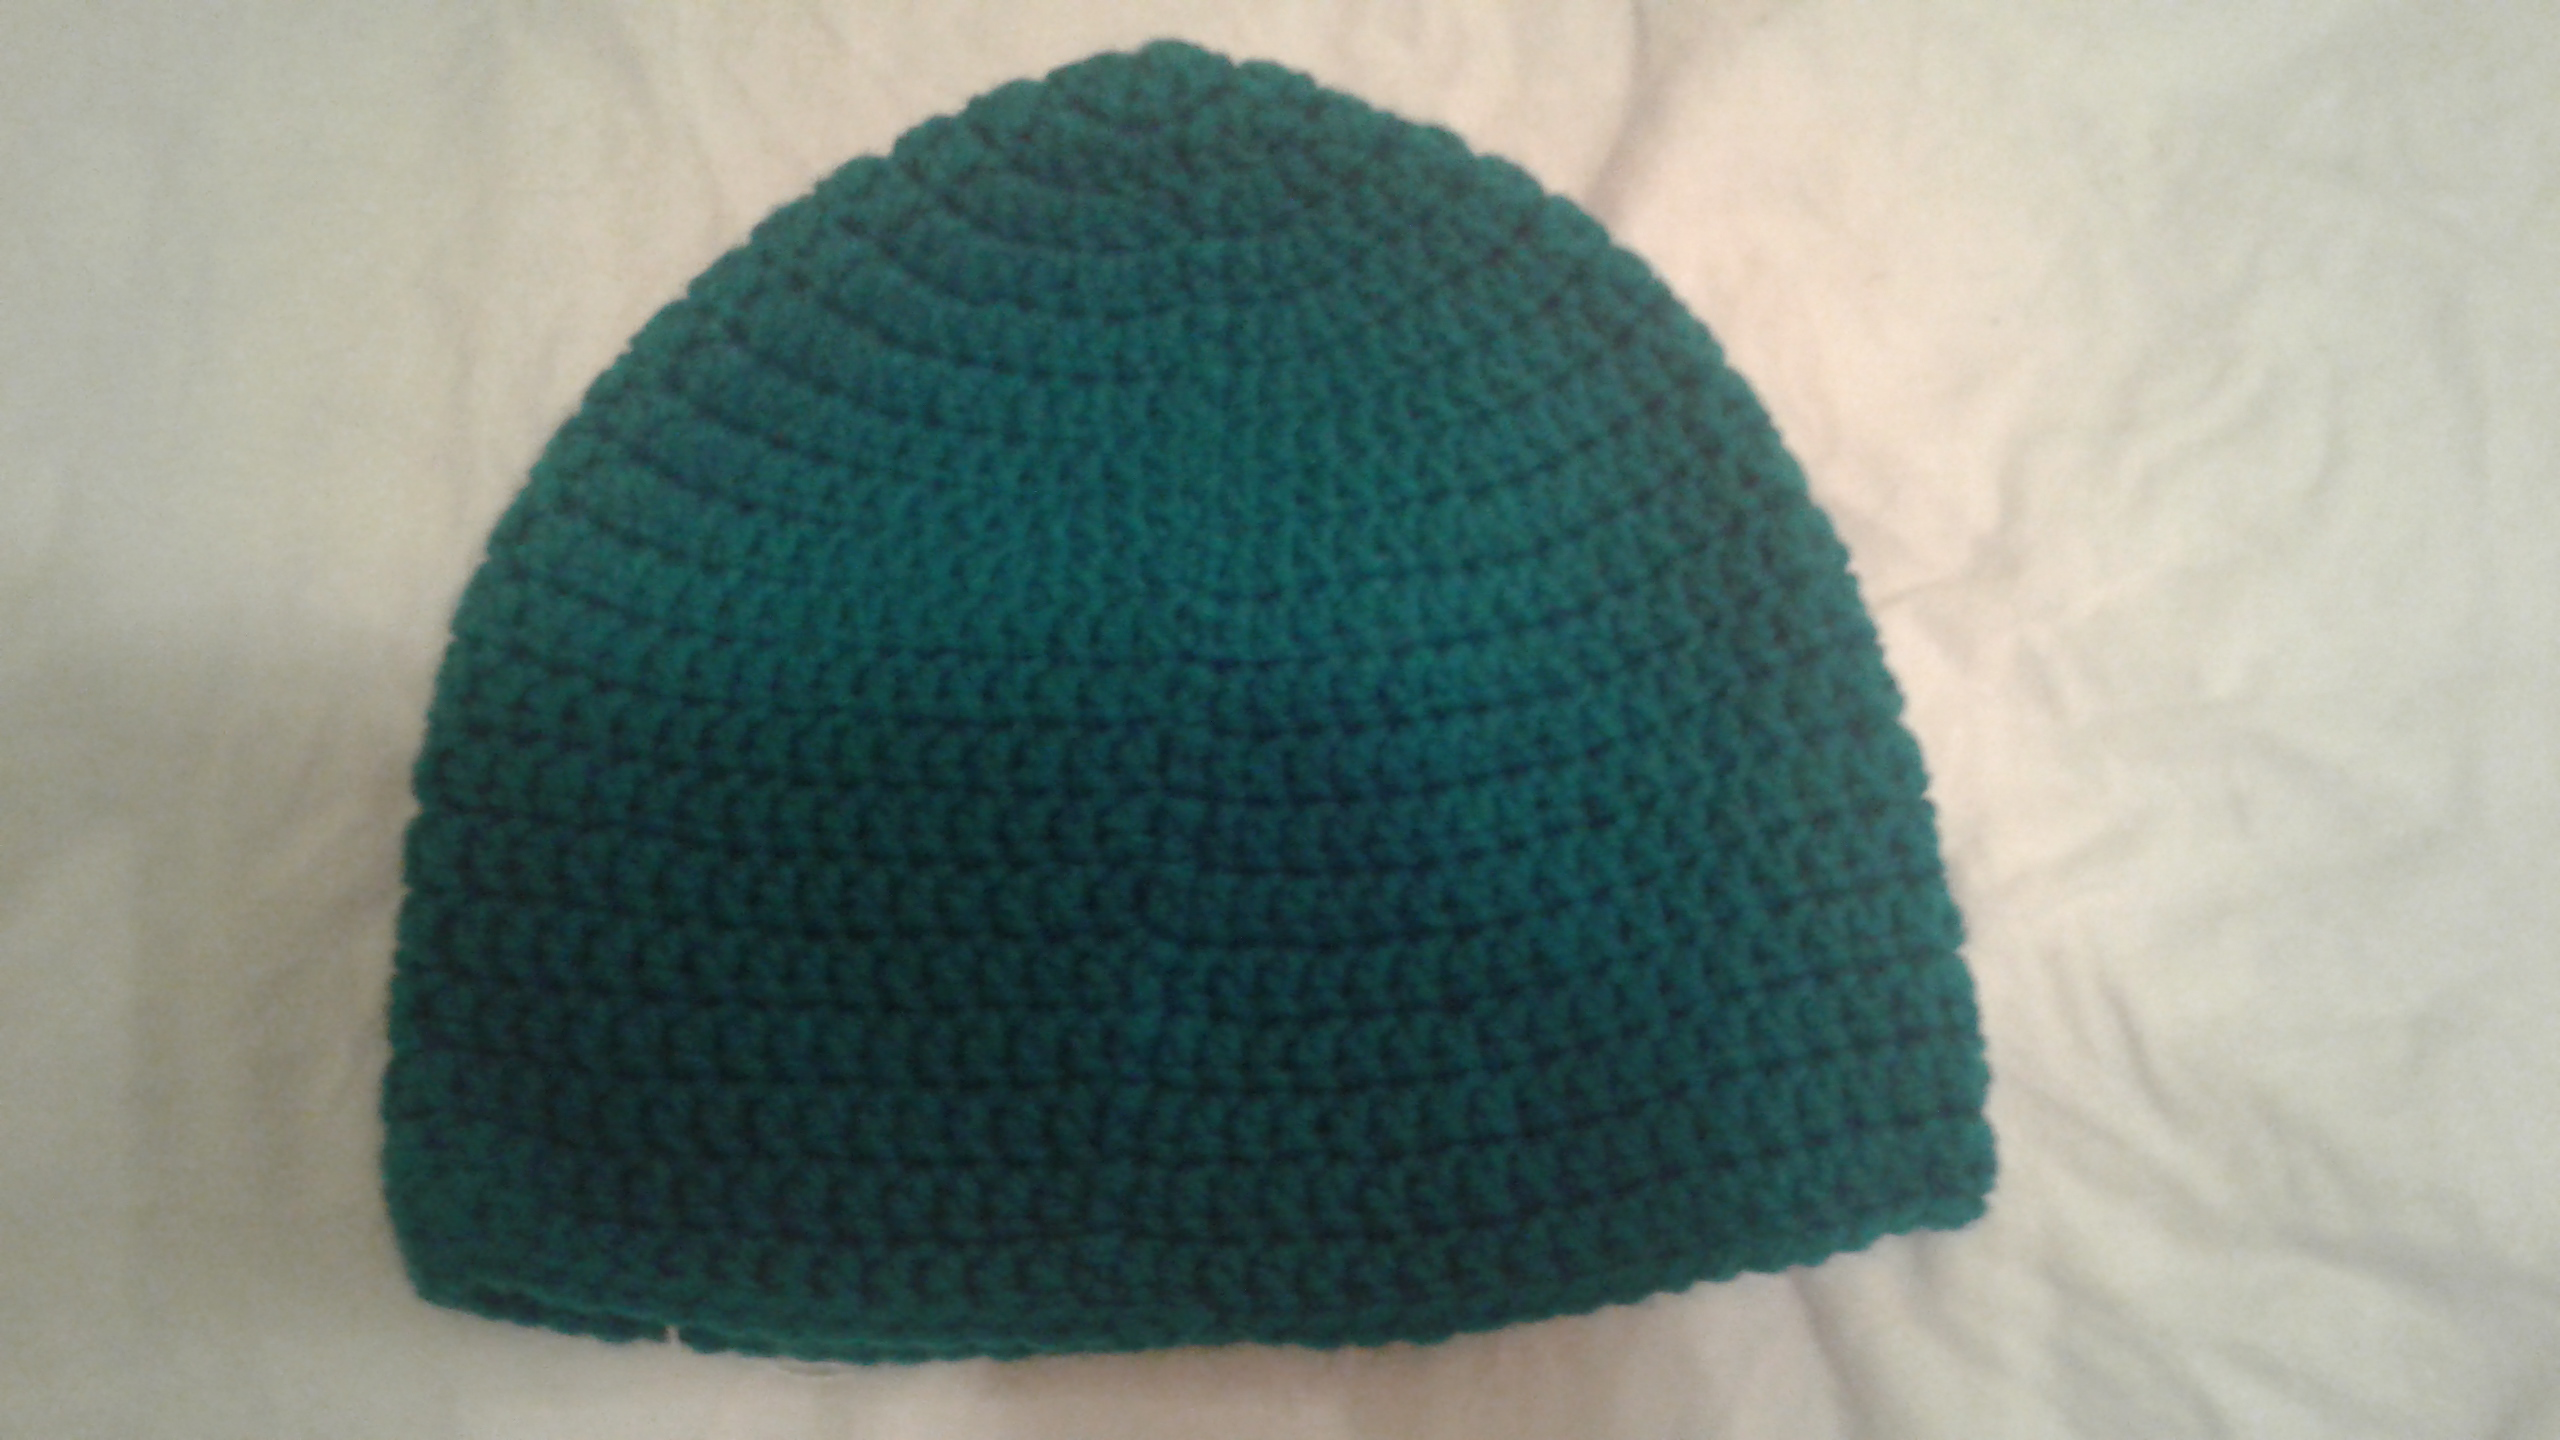 Teal Green Adult Size Winter Hat - Simple Crochet